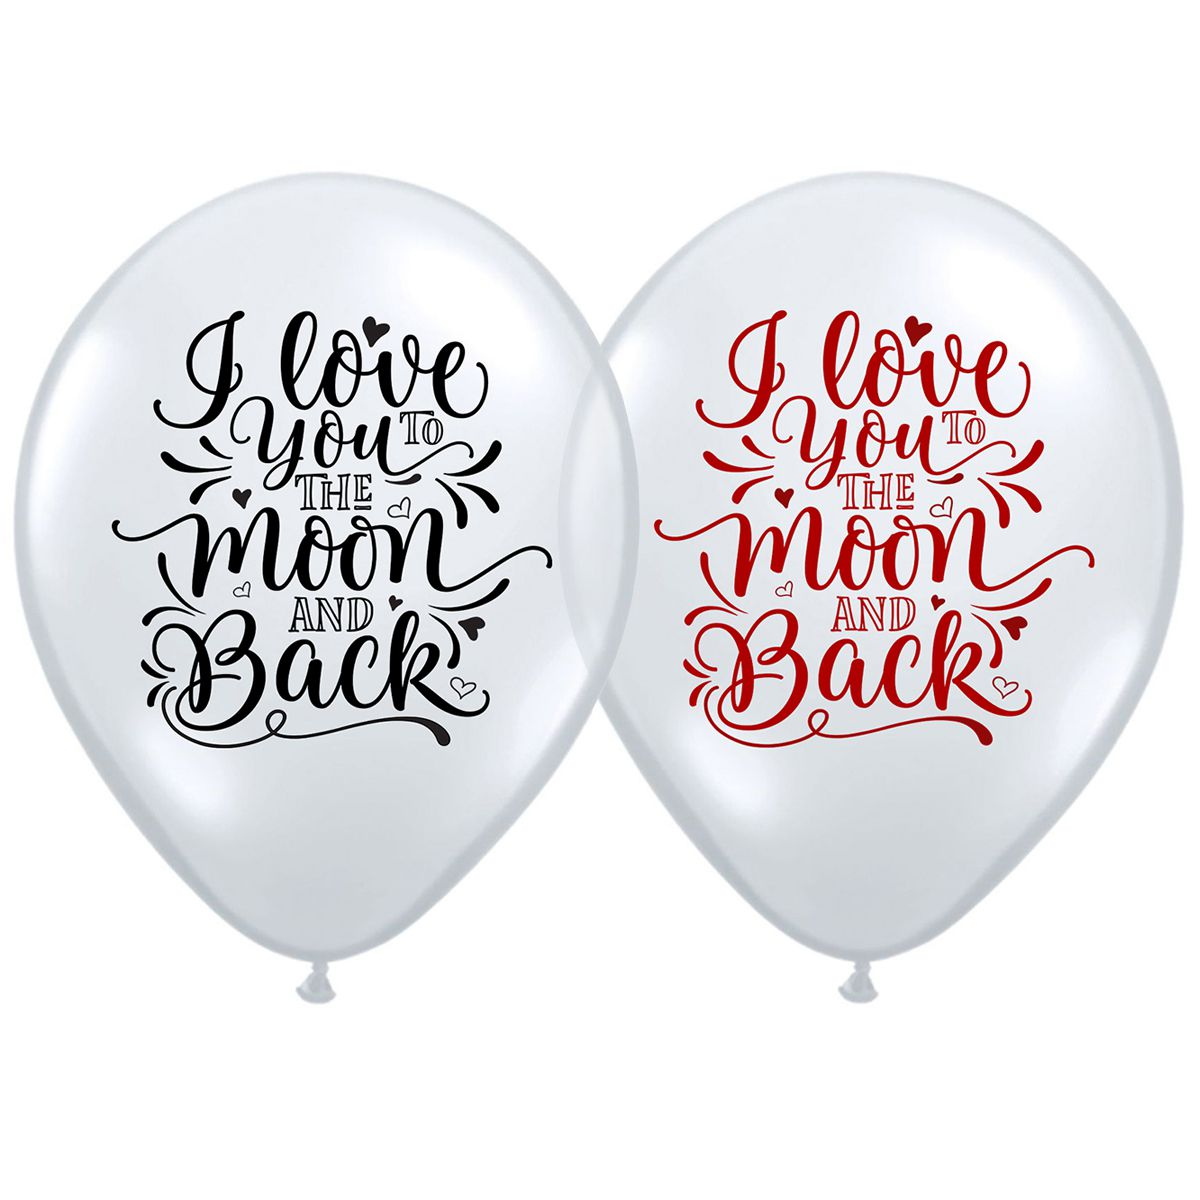 "BELBAL 14"" - 36см (I love you to the moon and back) 1065"